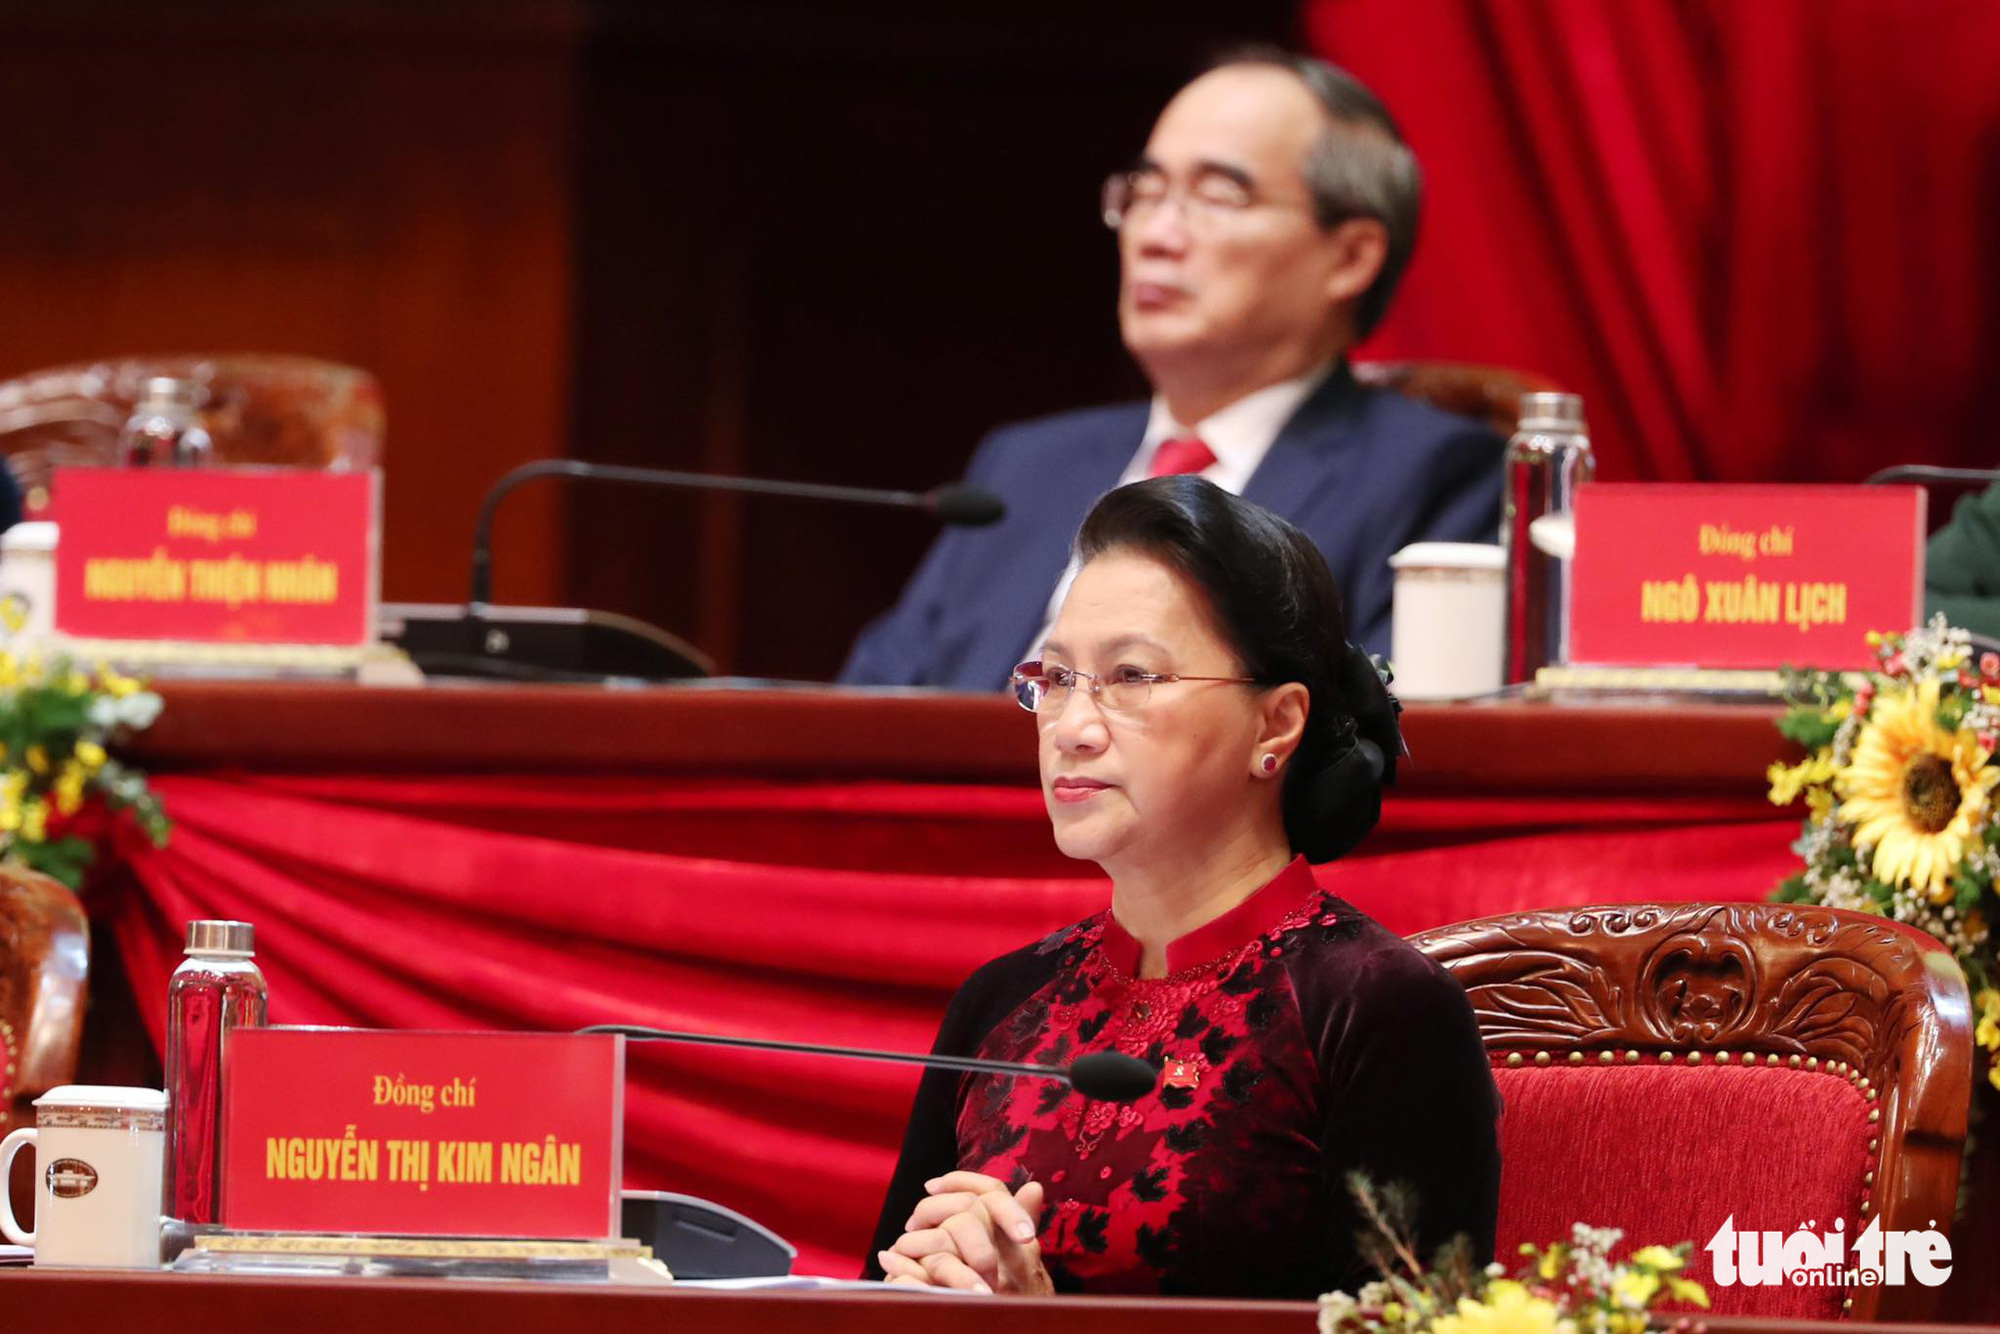 Chairwoman of the National Assembly Nguyen Thi Kim Ngan at the 13th National Party Congress in Hanoi, January 26, 2021. Photo: Minh Linh / Tuoi Tre